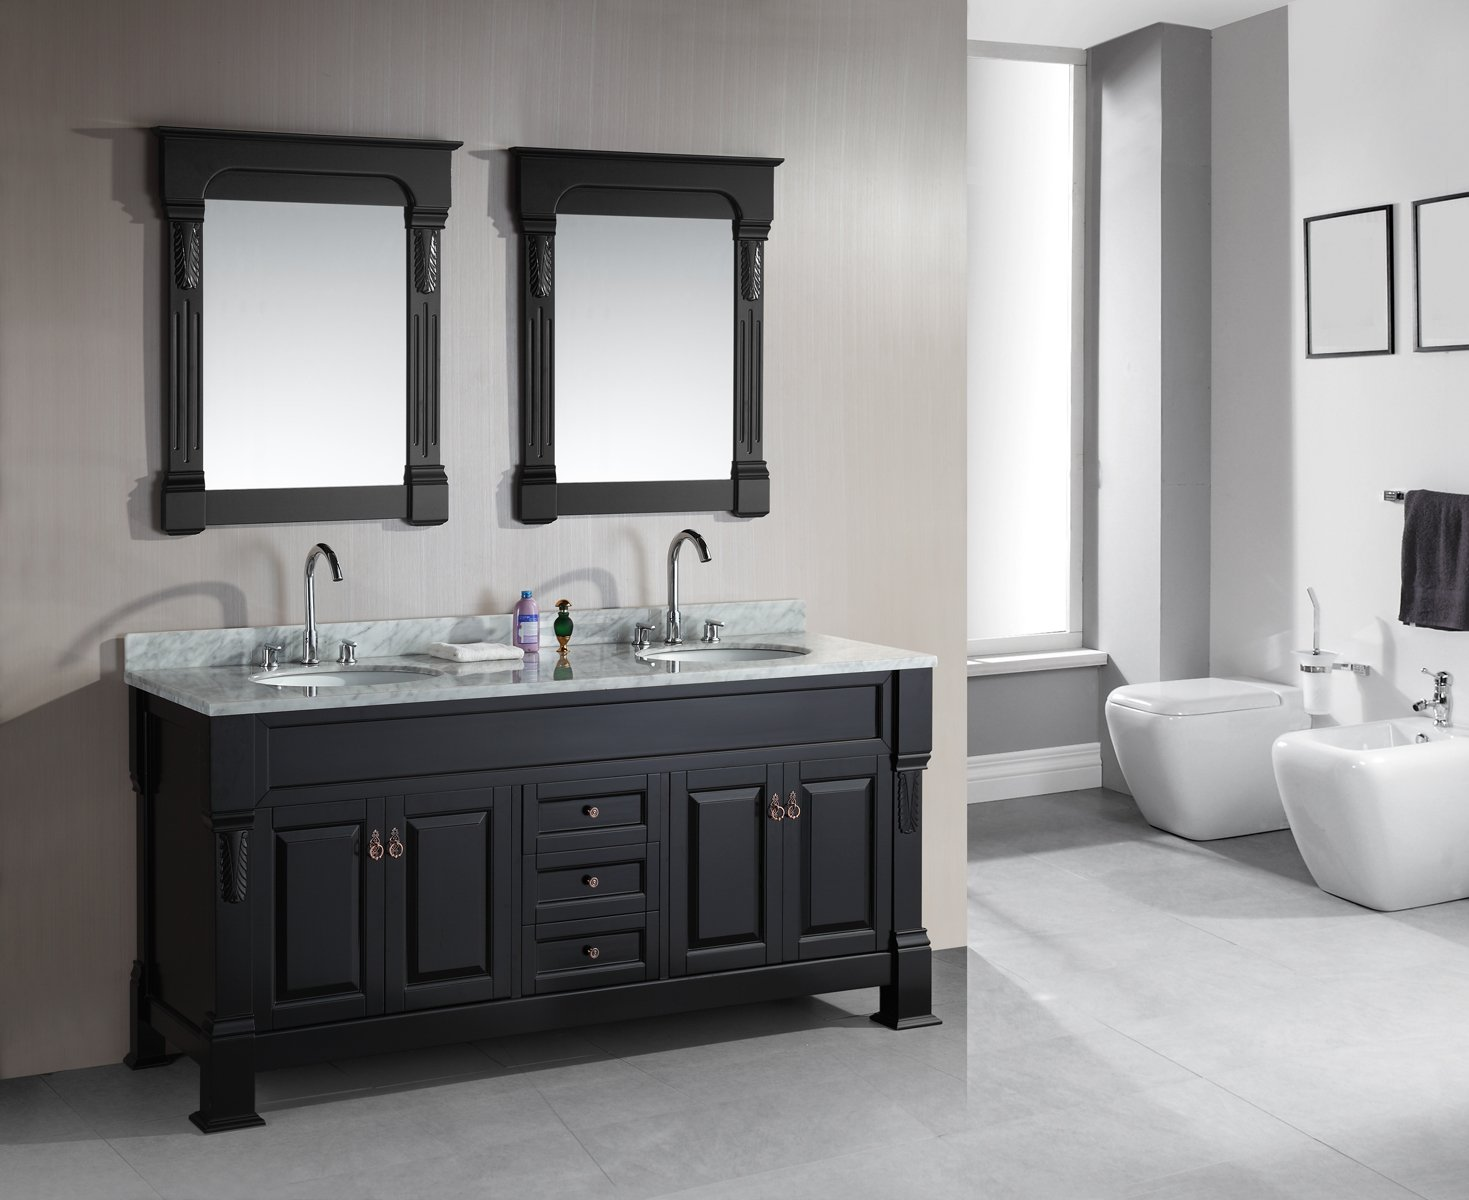 light dresser shades of sink double style vanity products